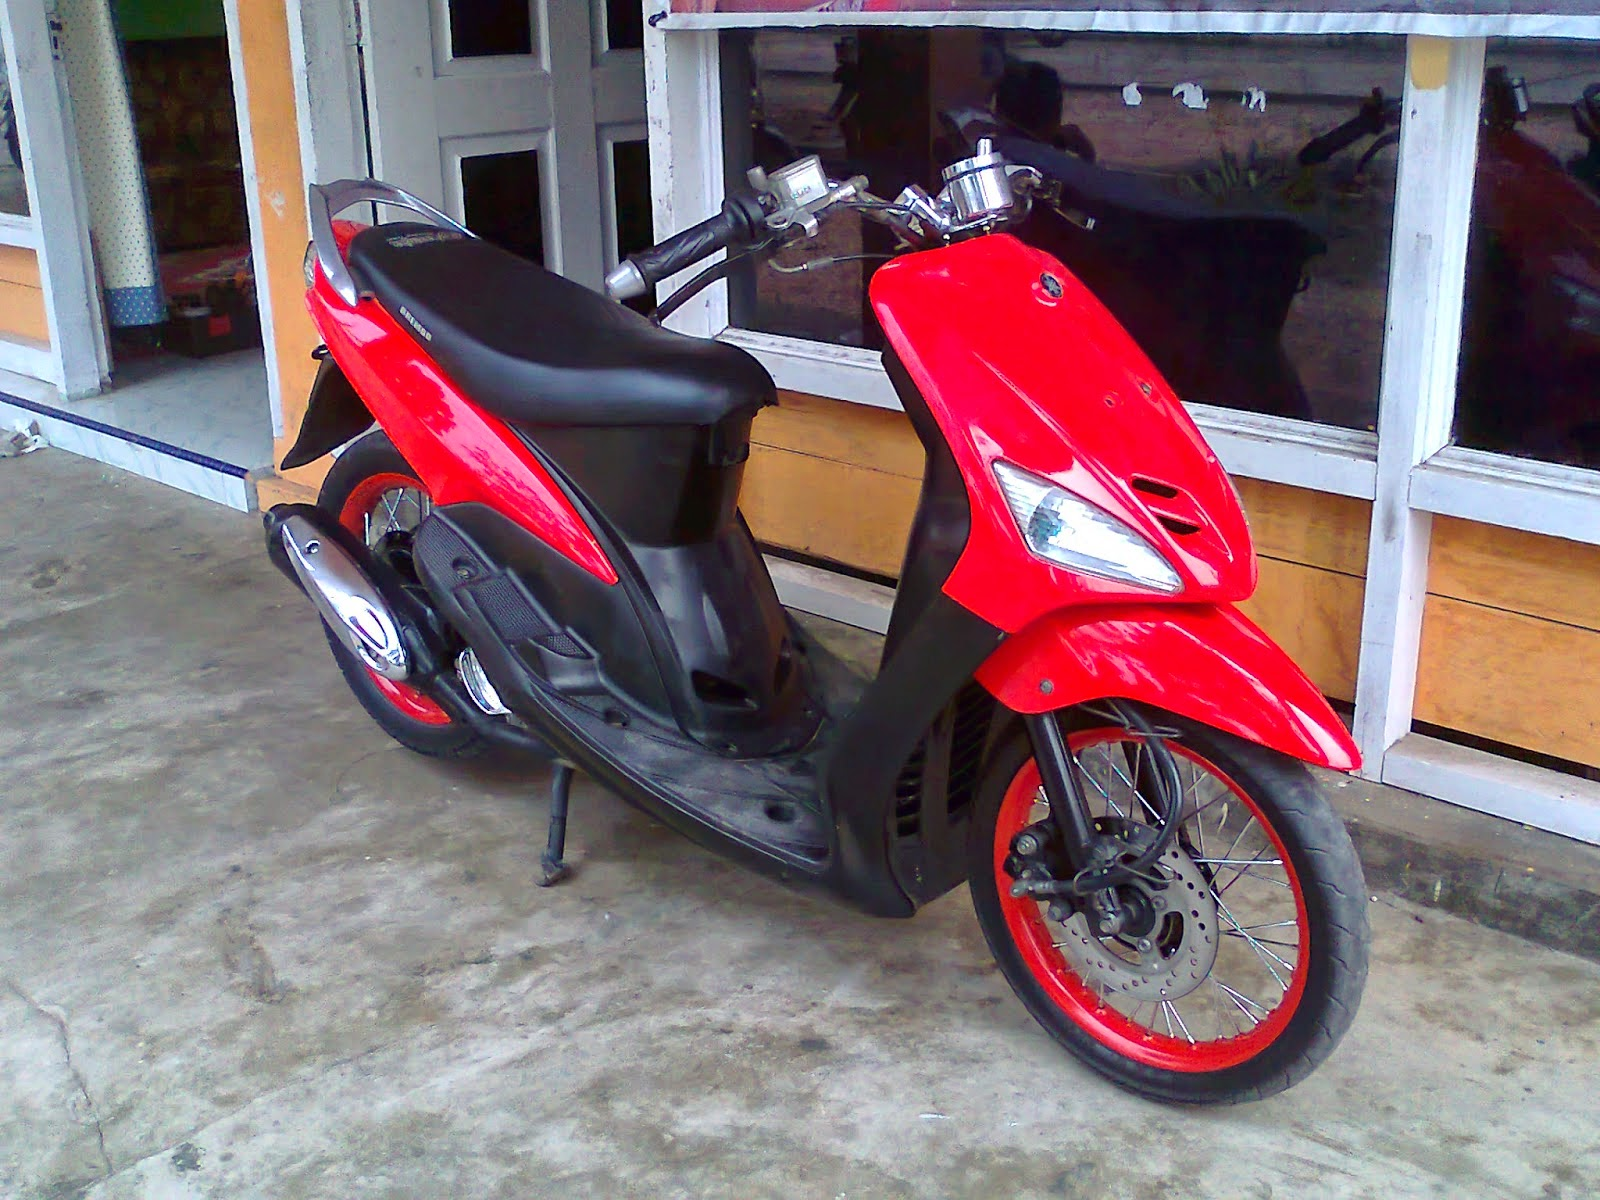 Modifikasi Mio Sporty Supermoto Modifikasi Motor Kawasaki Honda Yamaha